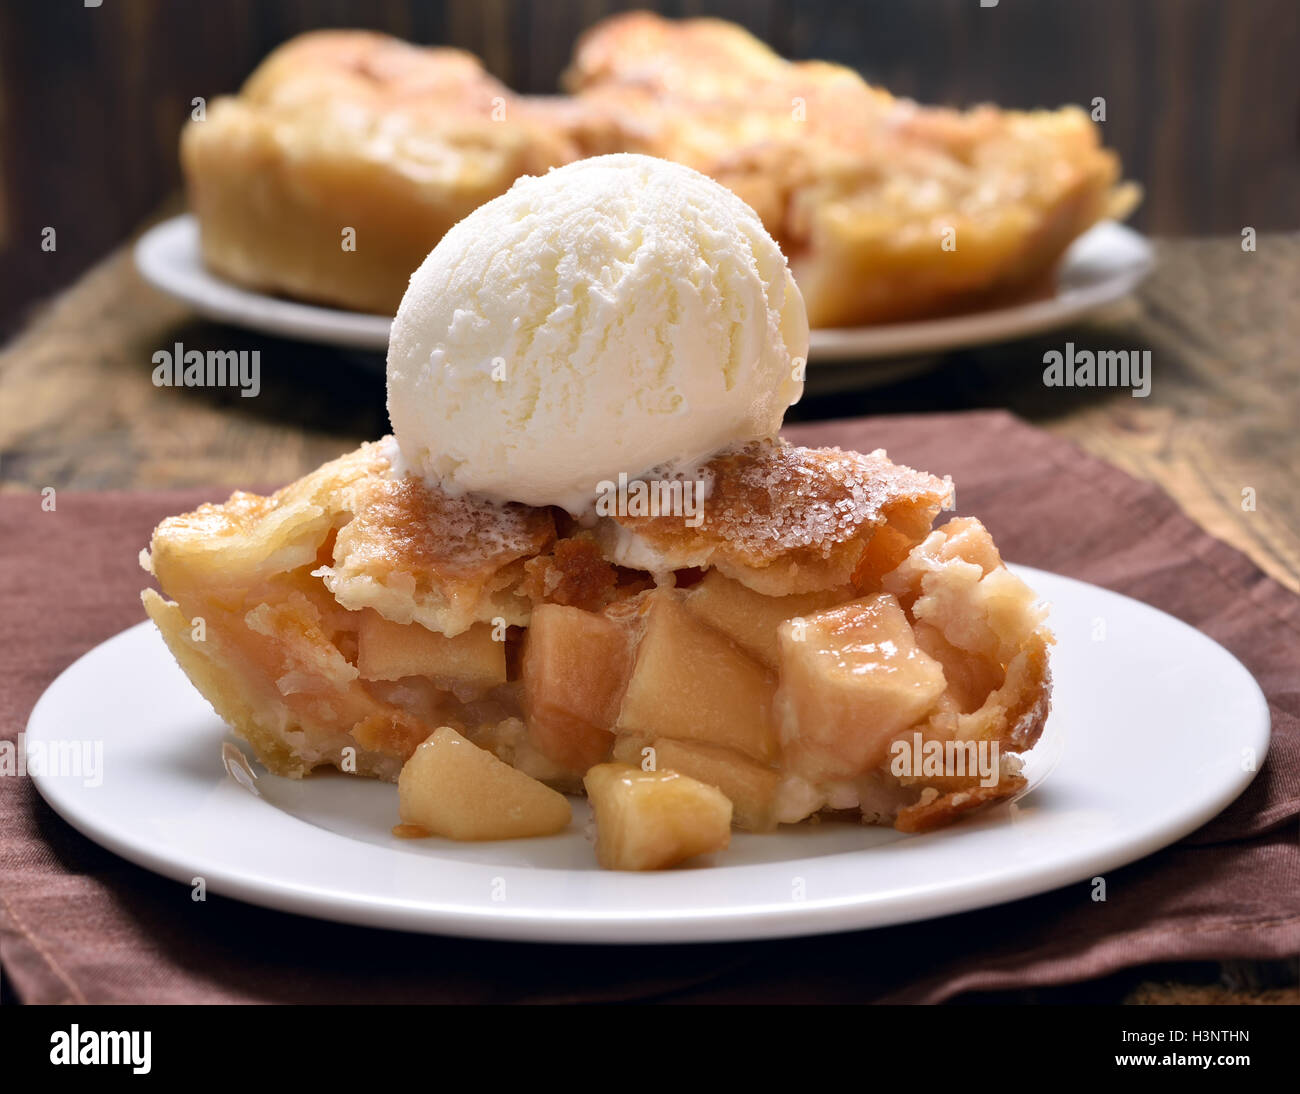 Piece of apple pie served with ice cream, close up view - Stock Image